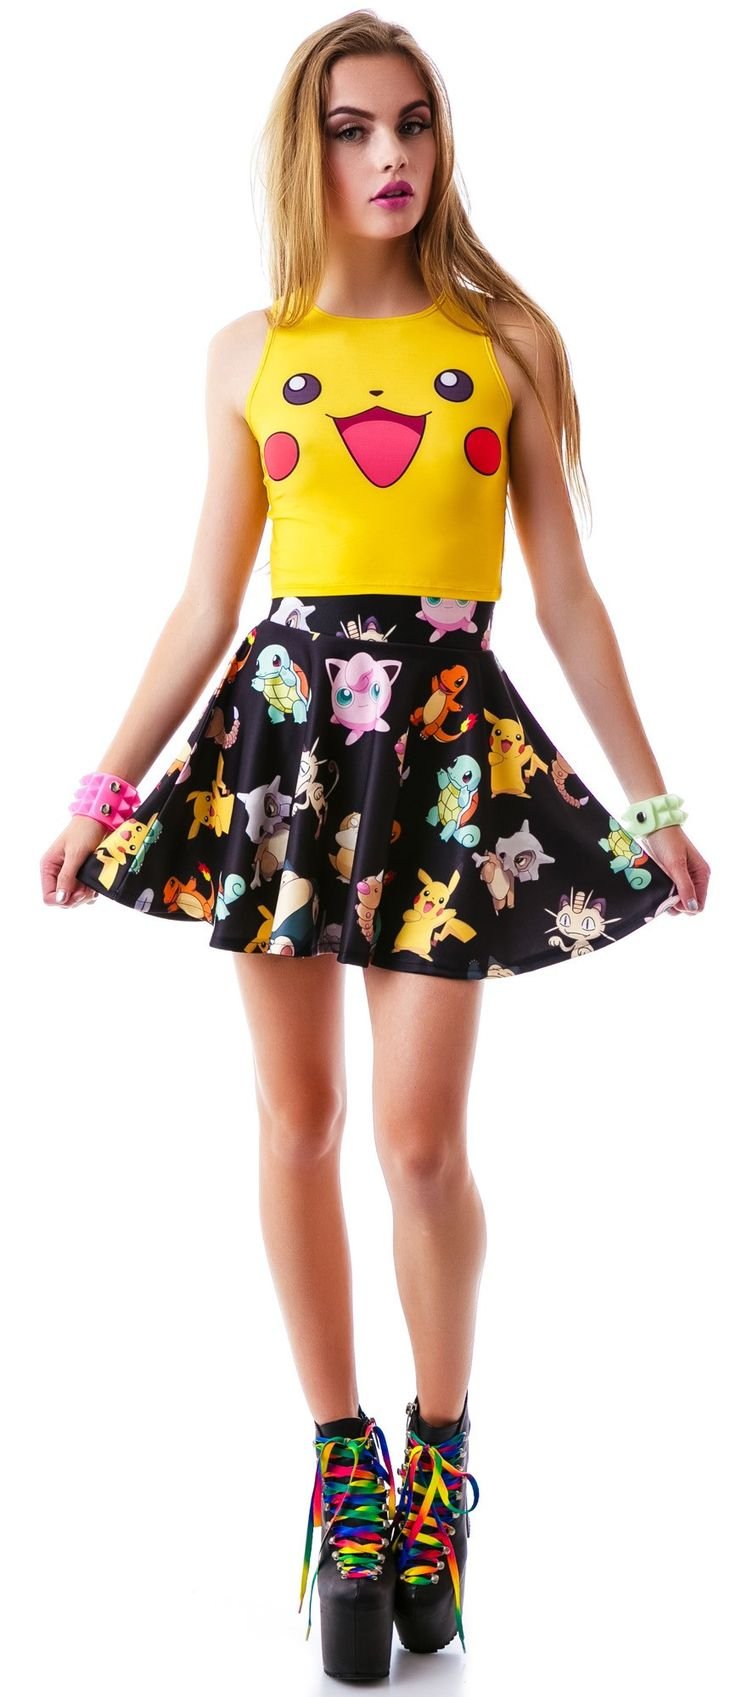 Creative Long Skirts And Tops Images  Modern Skirts Blog For You